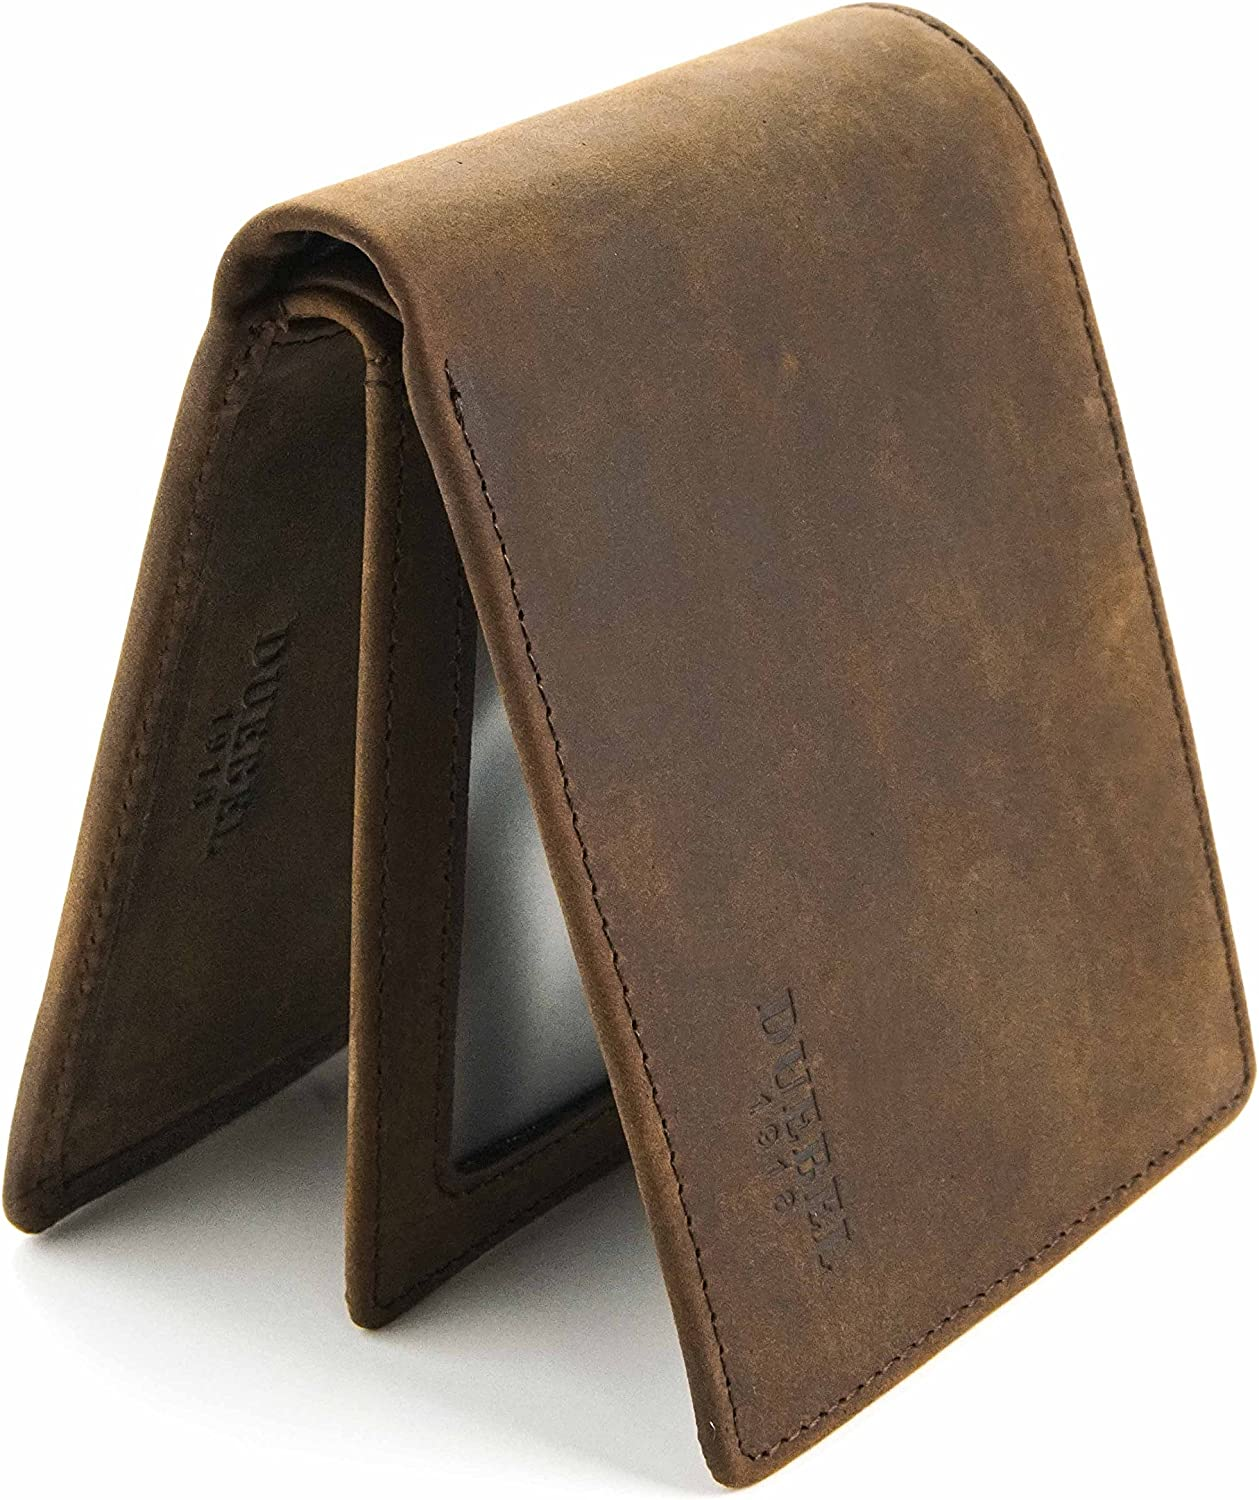 DUEBEL Vintage Full-grain Leather Wallet with ID Window